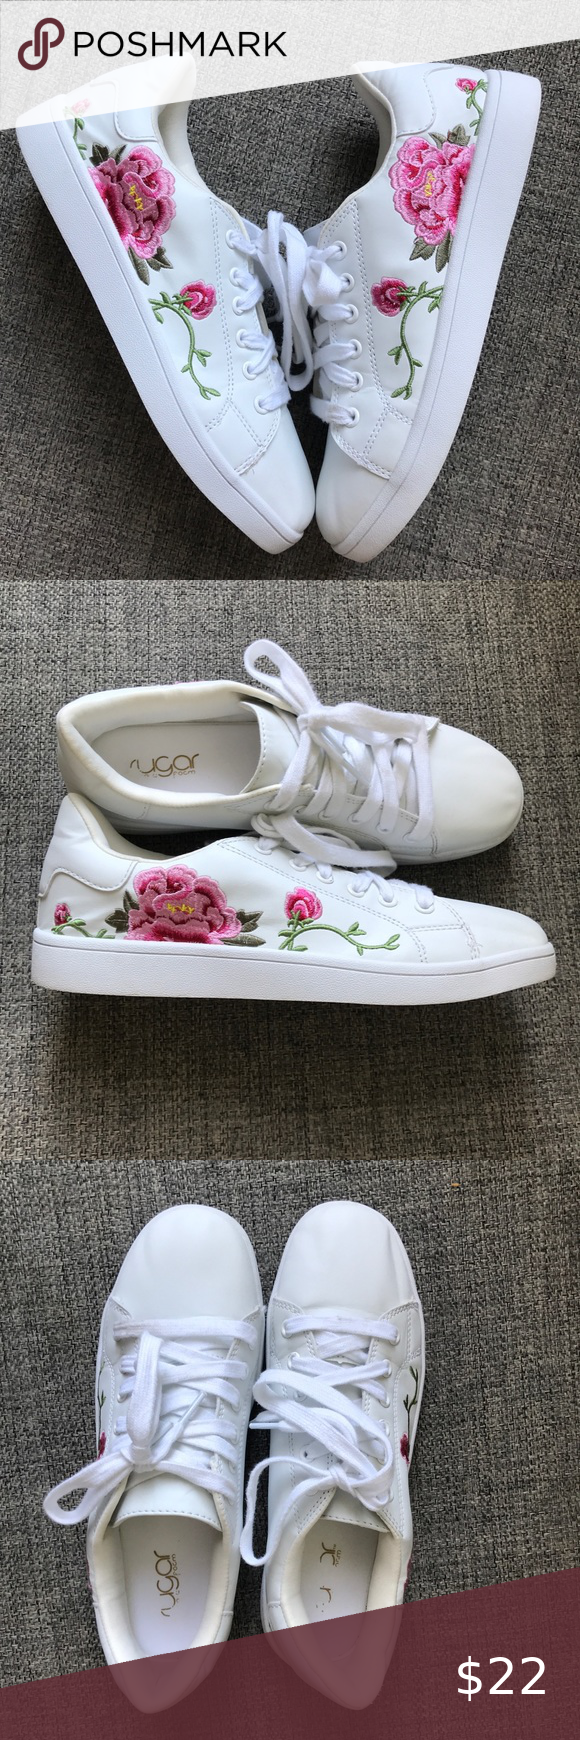 Flower Embroidered Tennis Shoes in 2020